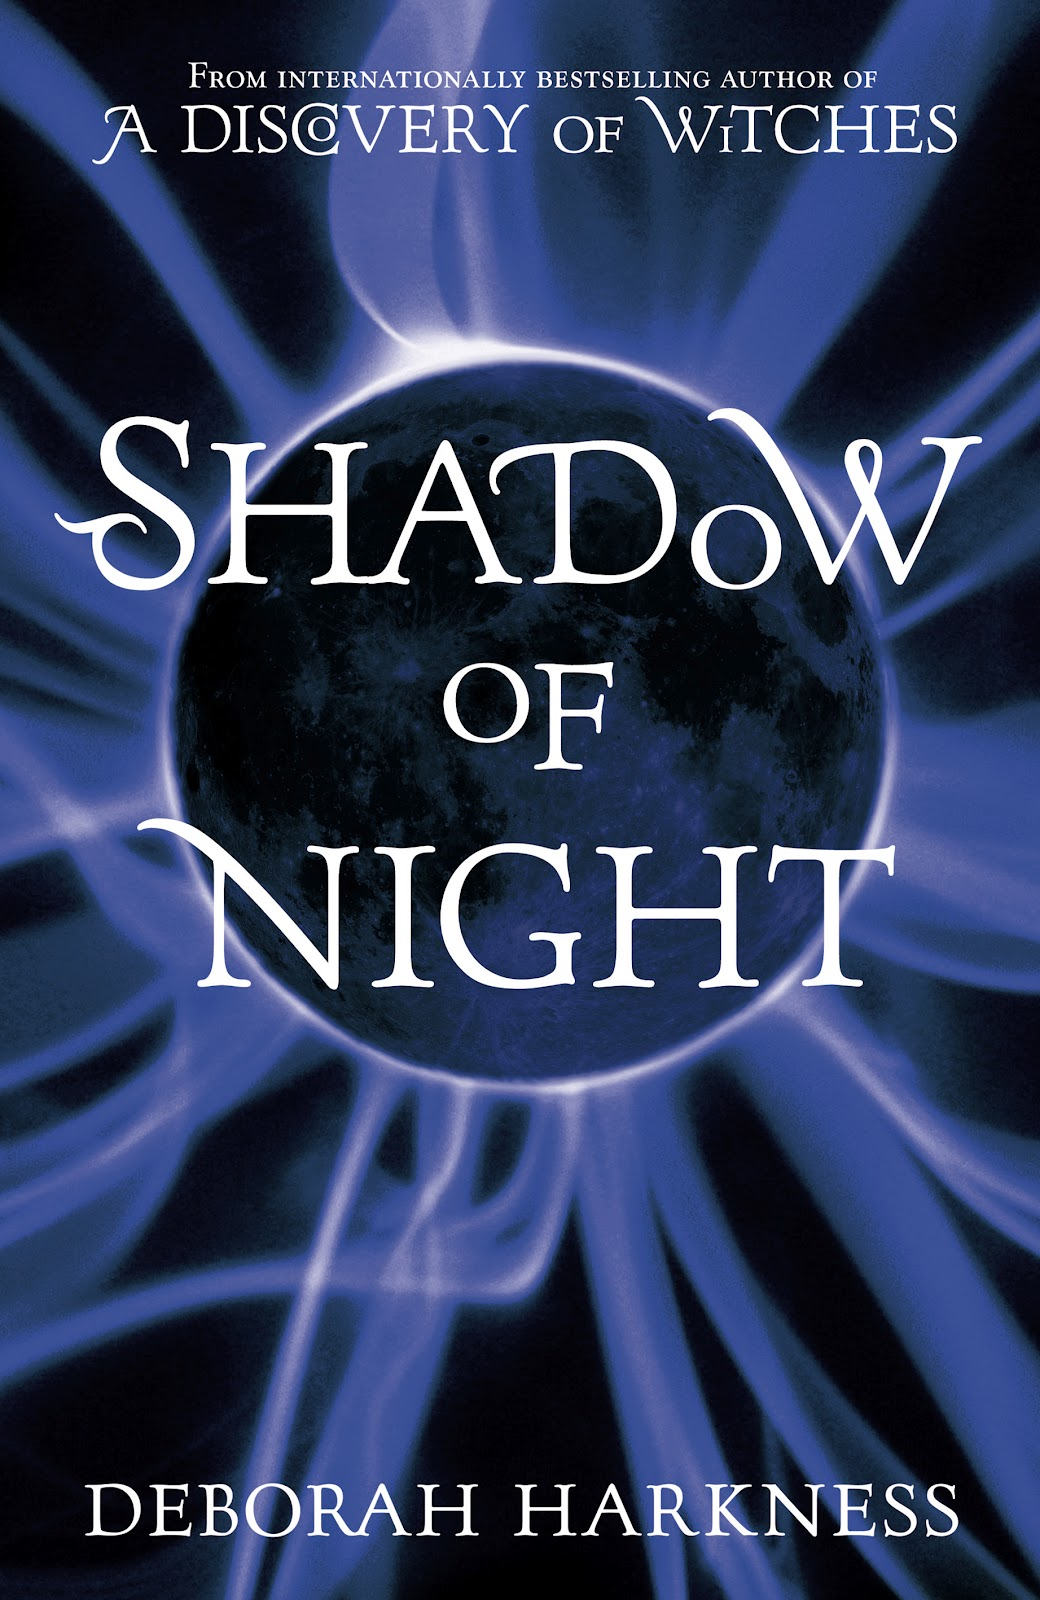 Image result for shadow of night deborah harkness